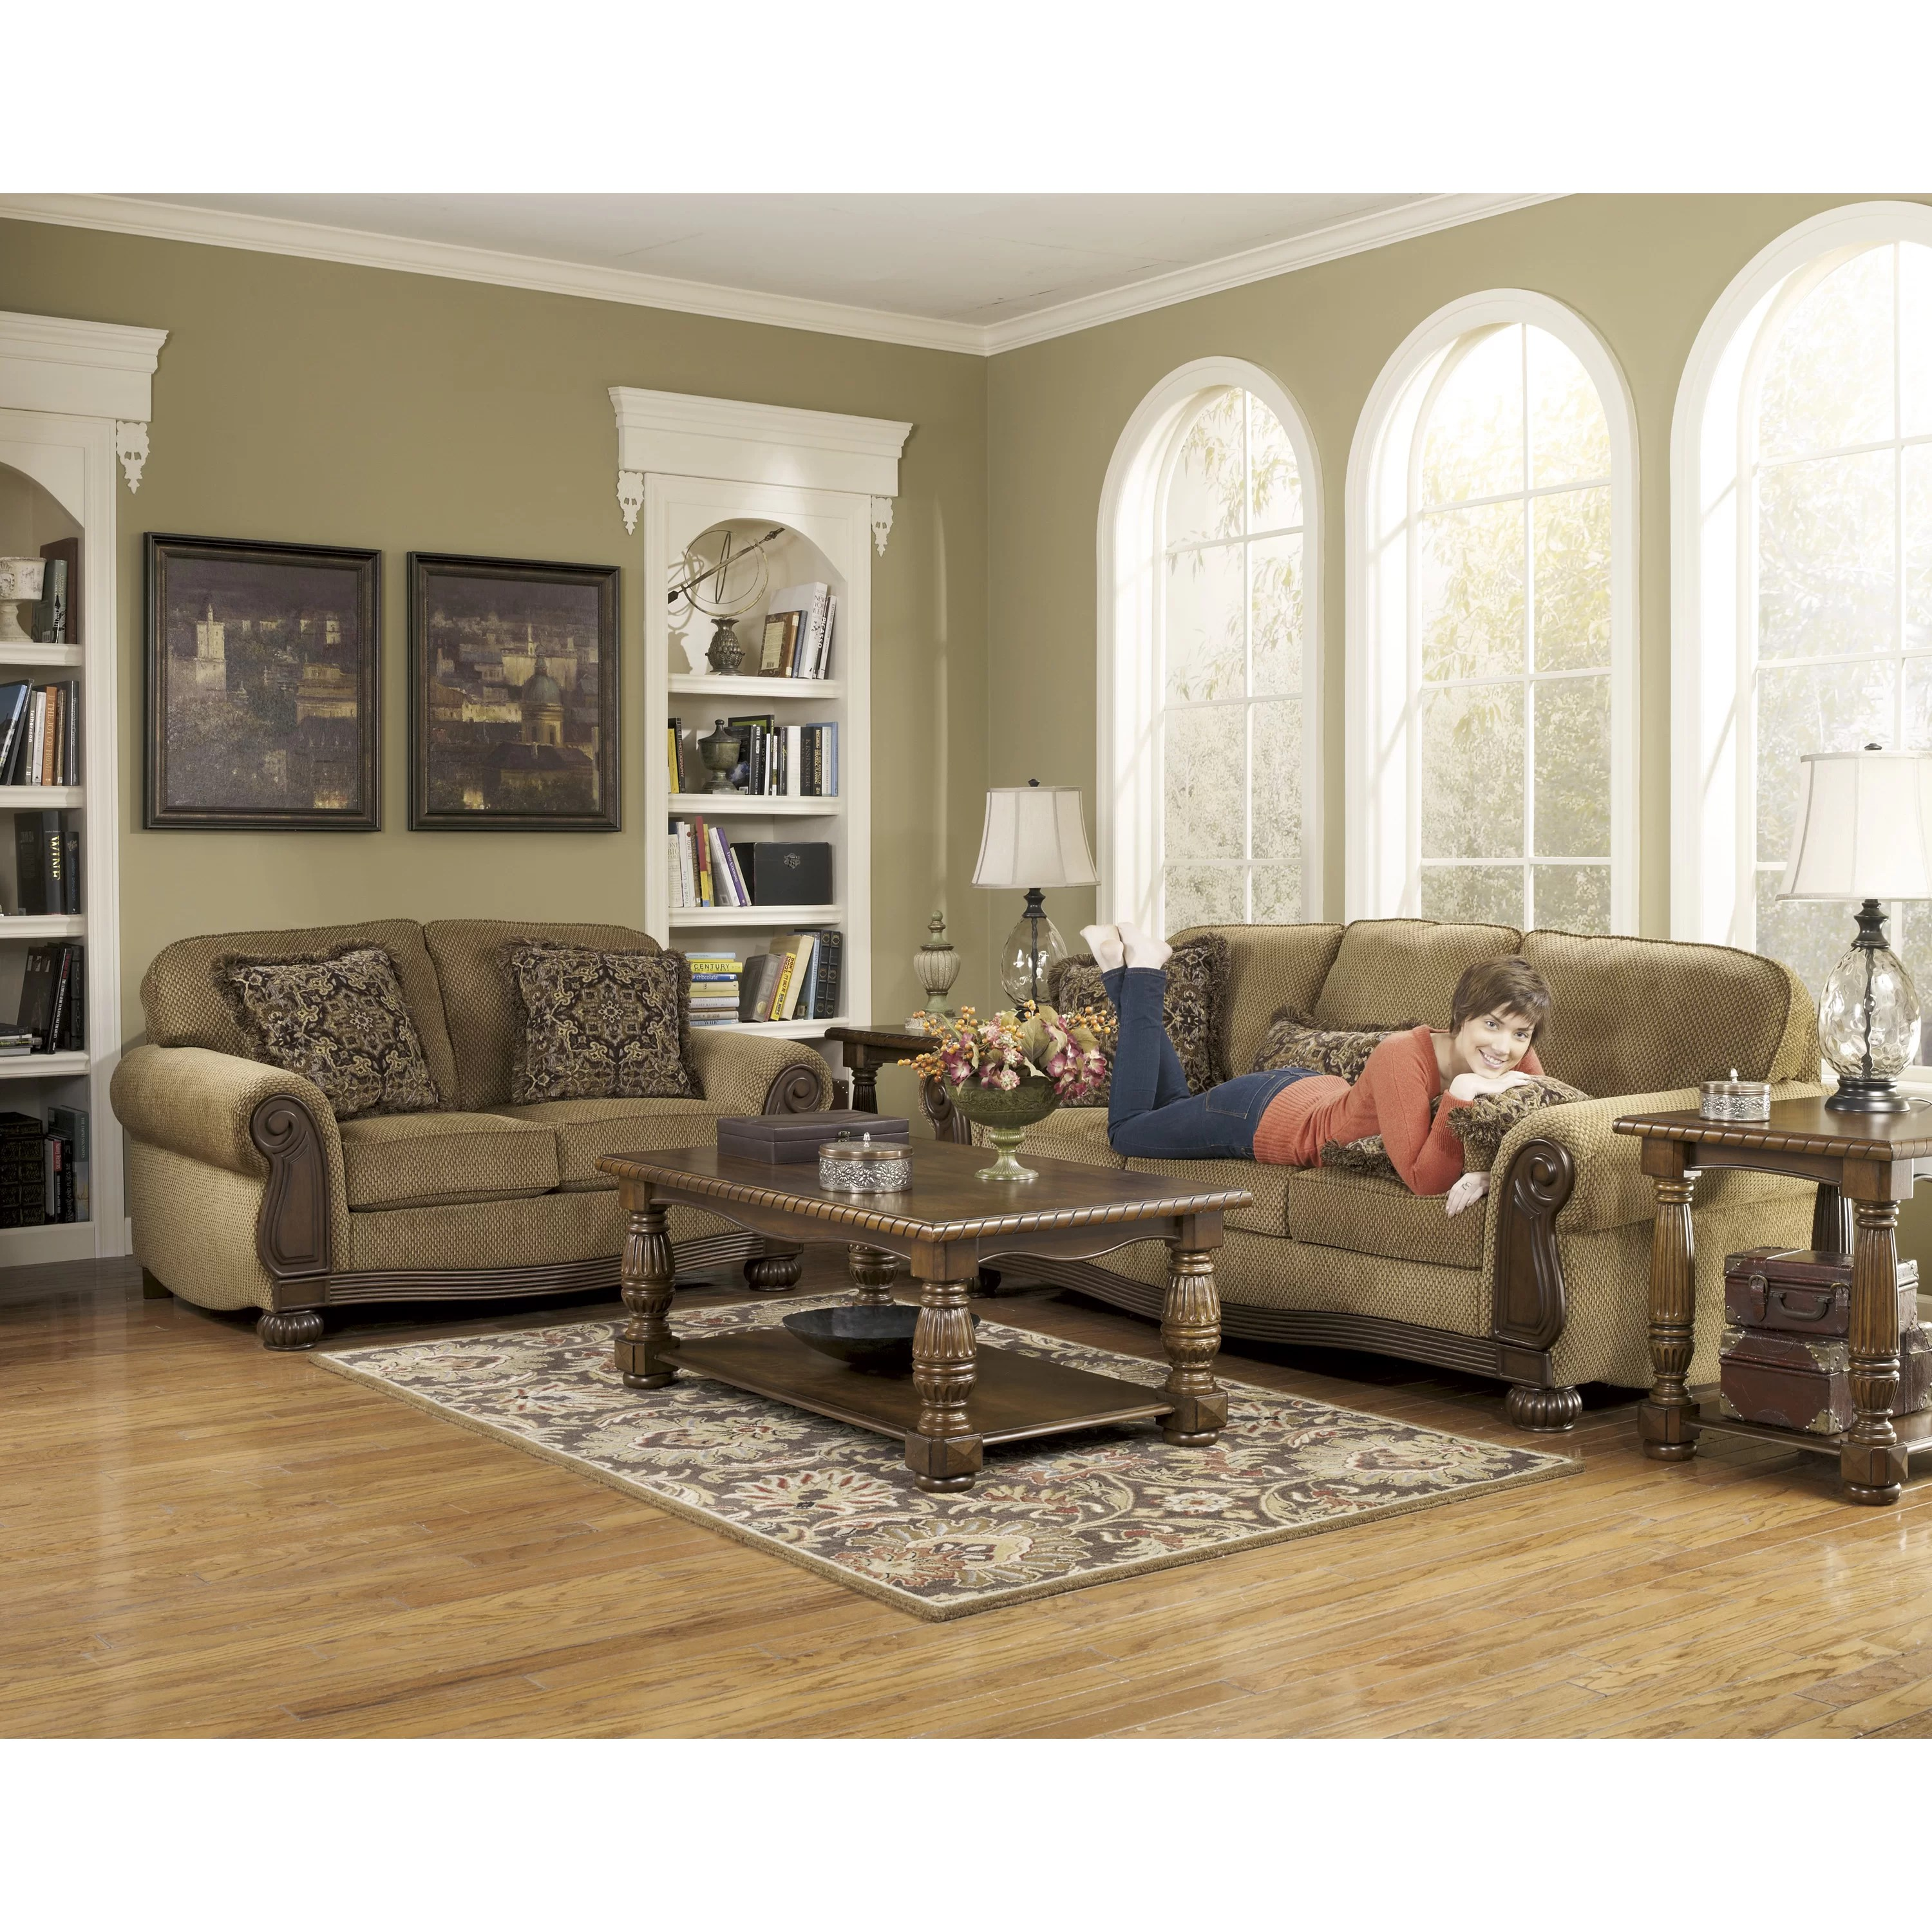 signature design by ashley harvest sleeper sofa chesterfield bed london taylor and reviews wayfair